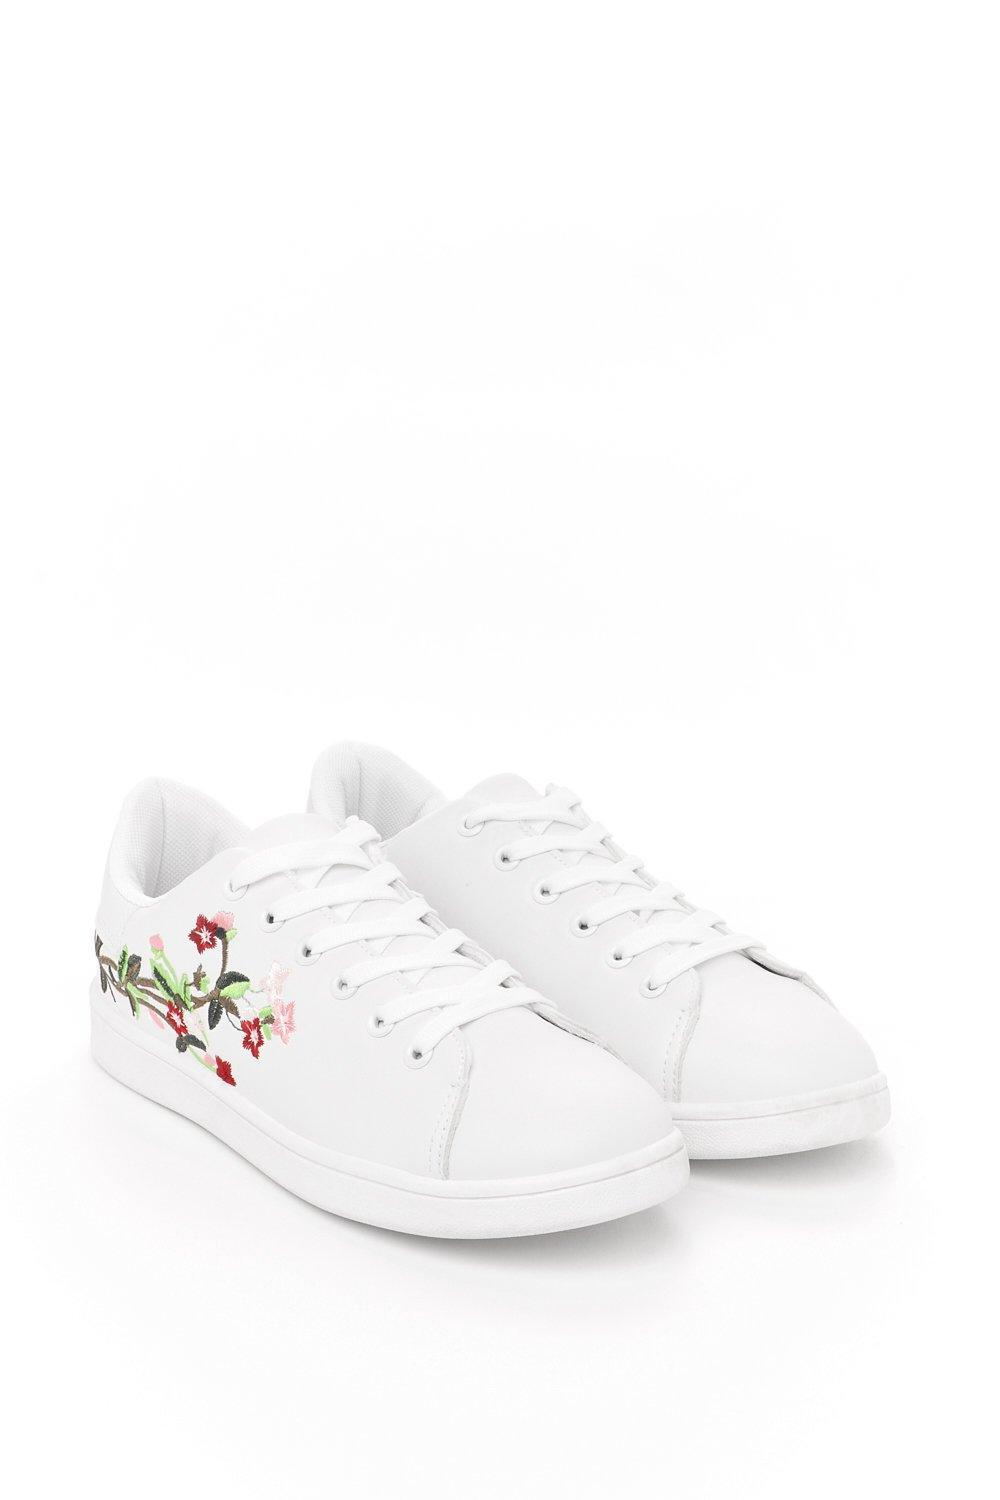 Nasty Gal Synthetic Cherry Blossom Floral Embroidered Sneaker Cherry Blossom Floral Embroidered Sneaker in White